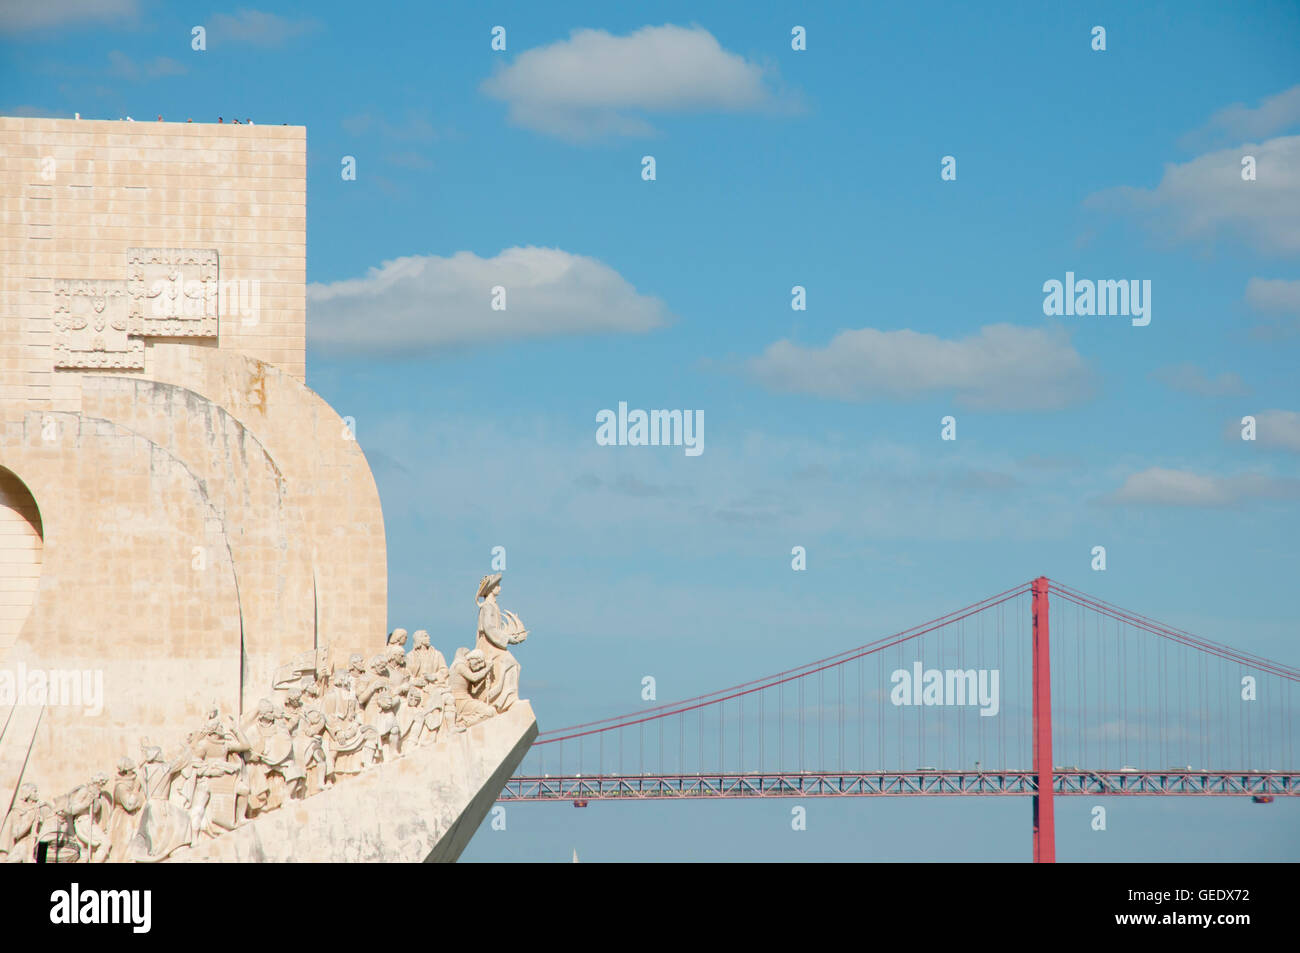 Monument to the Discoveries - Lisbon - Portugal - Stock Image